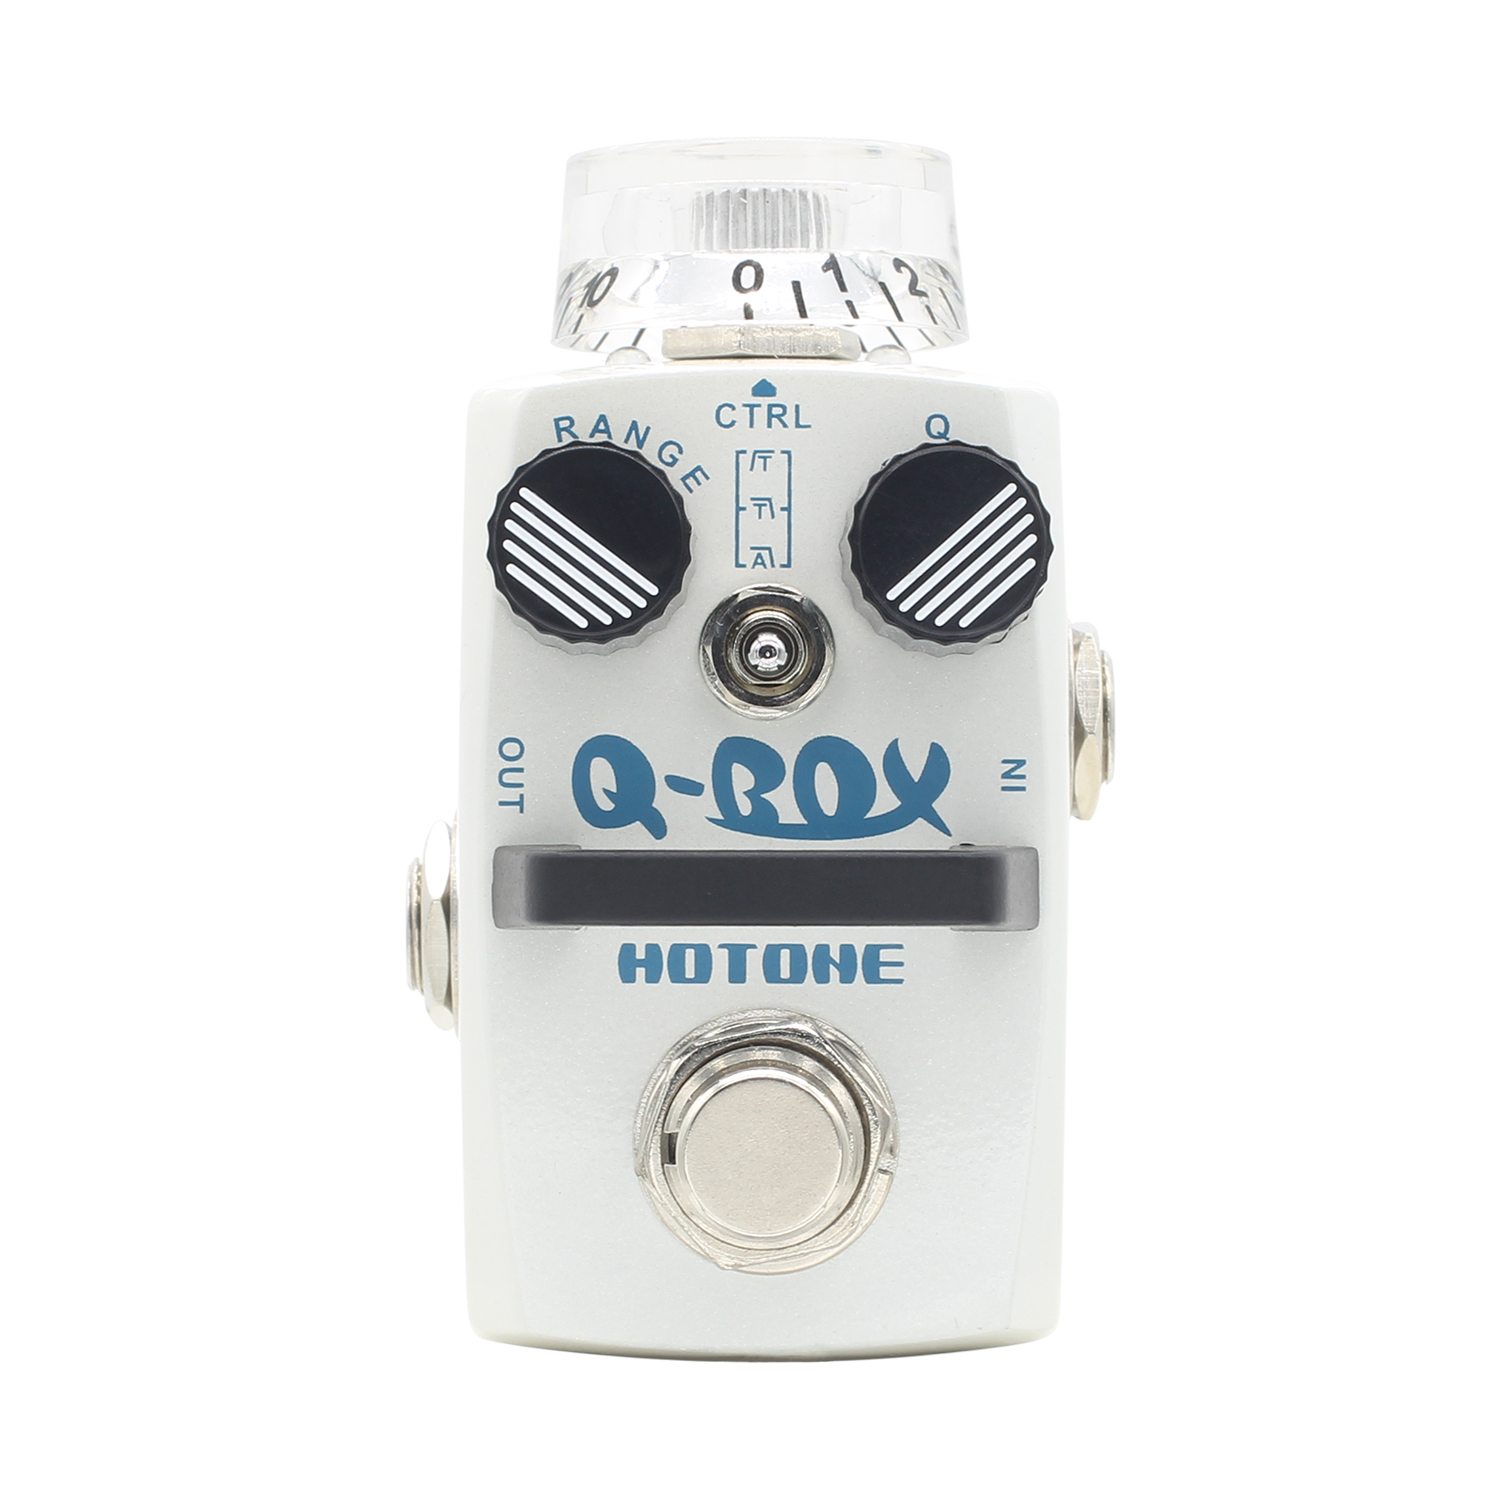 Hotone Q-Box Filter Electric Guitar Pedal wih Autowah and Dynamic Wah Effects Ture Bypass Digital Envelope Filter hotone soul press volume expression wah wah guitar pedal cry baby sound